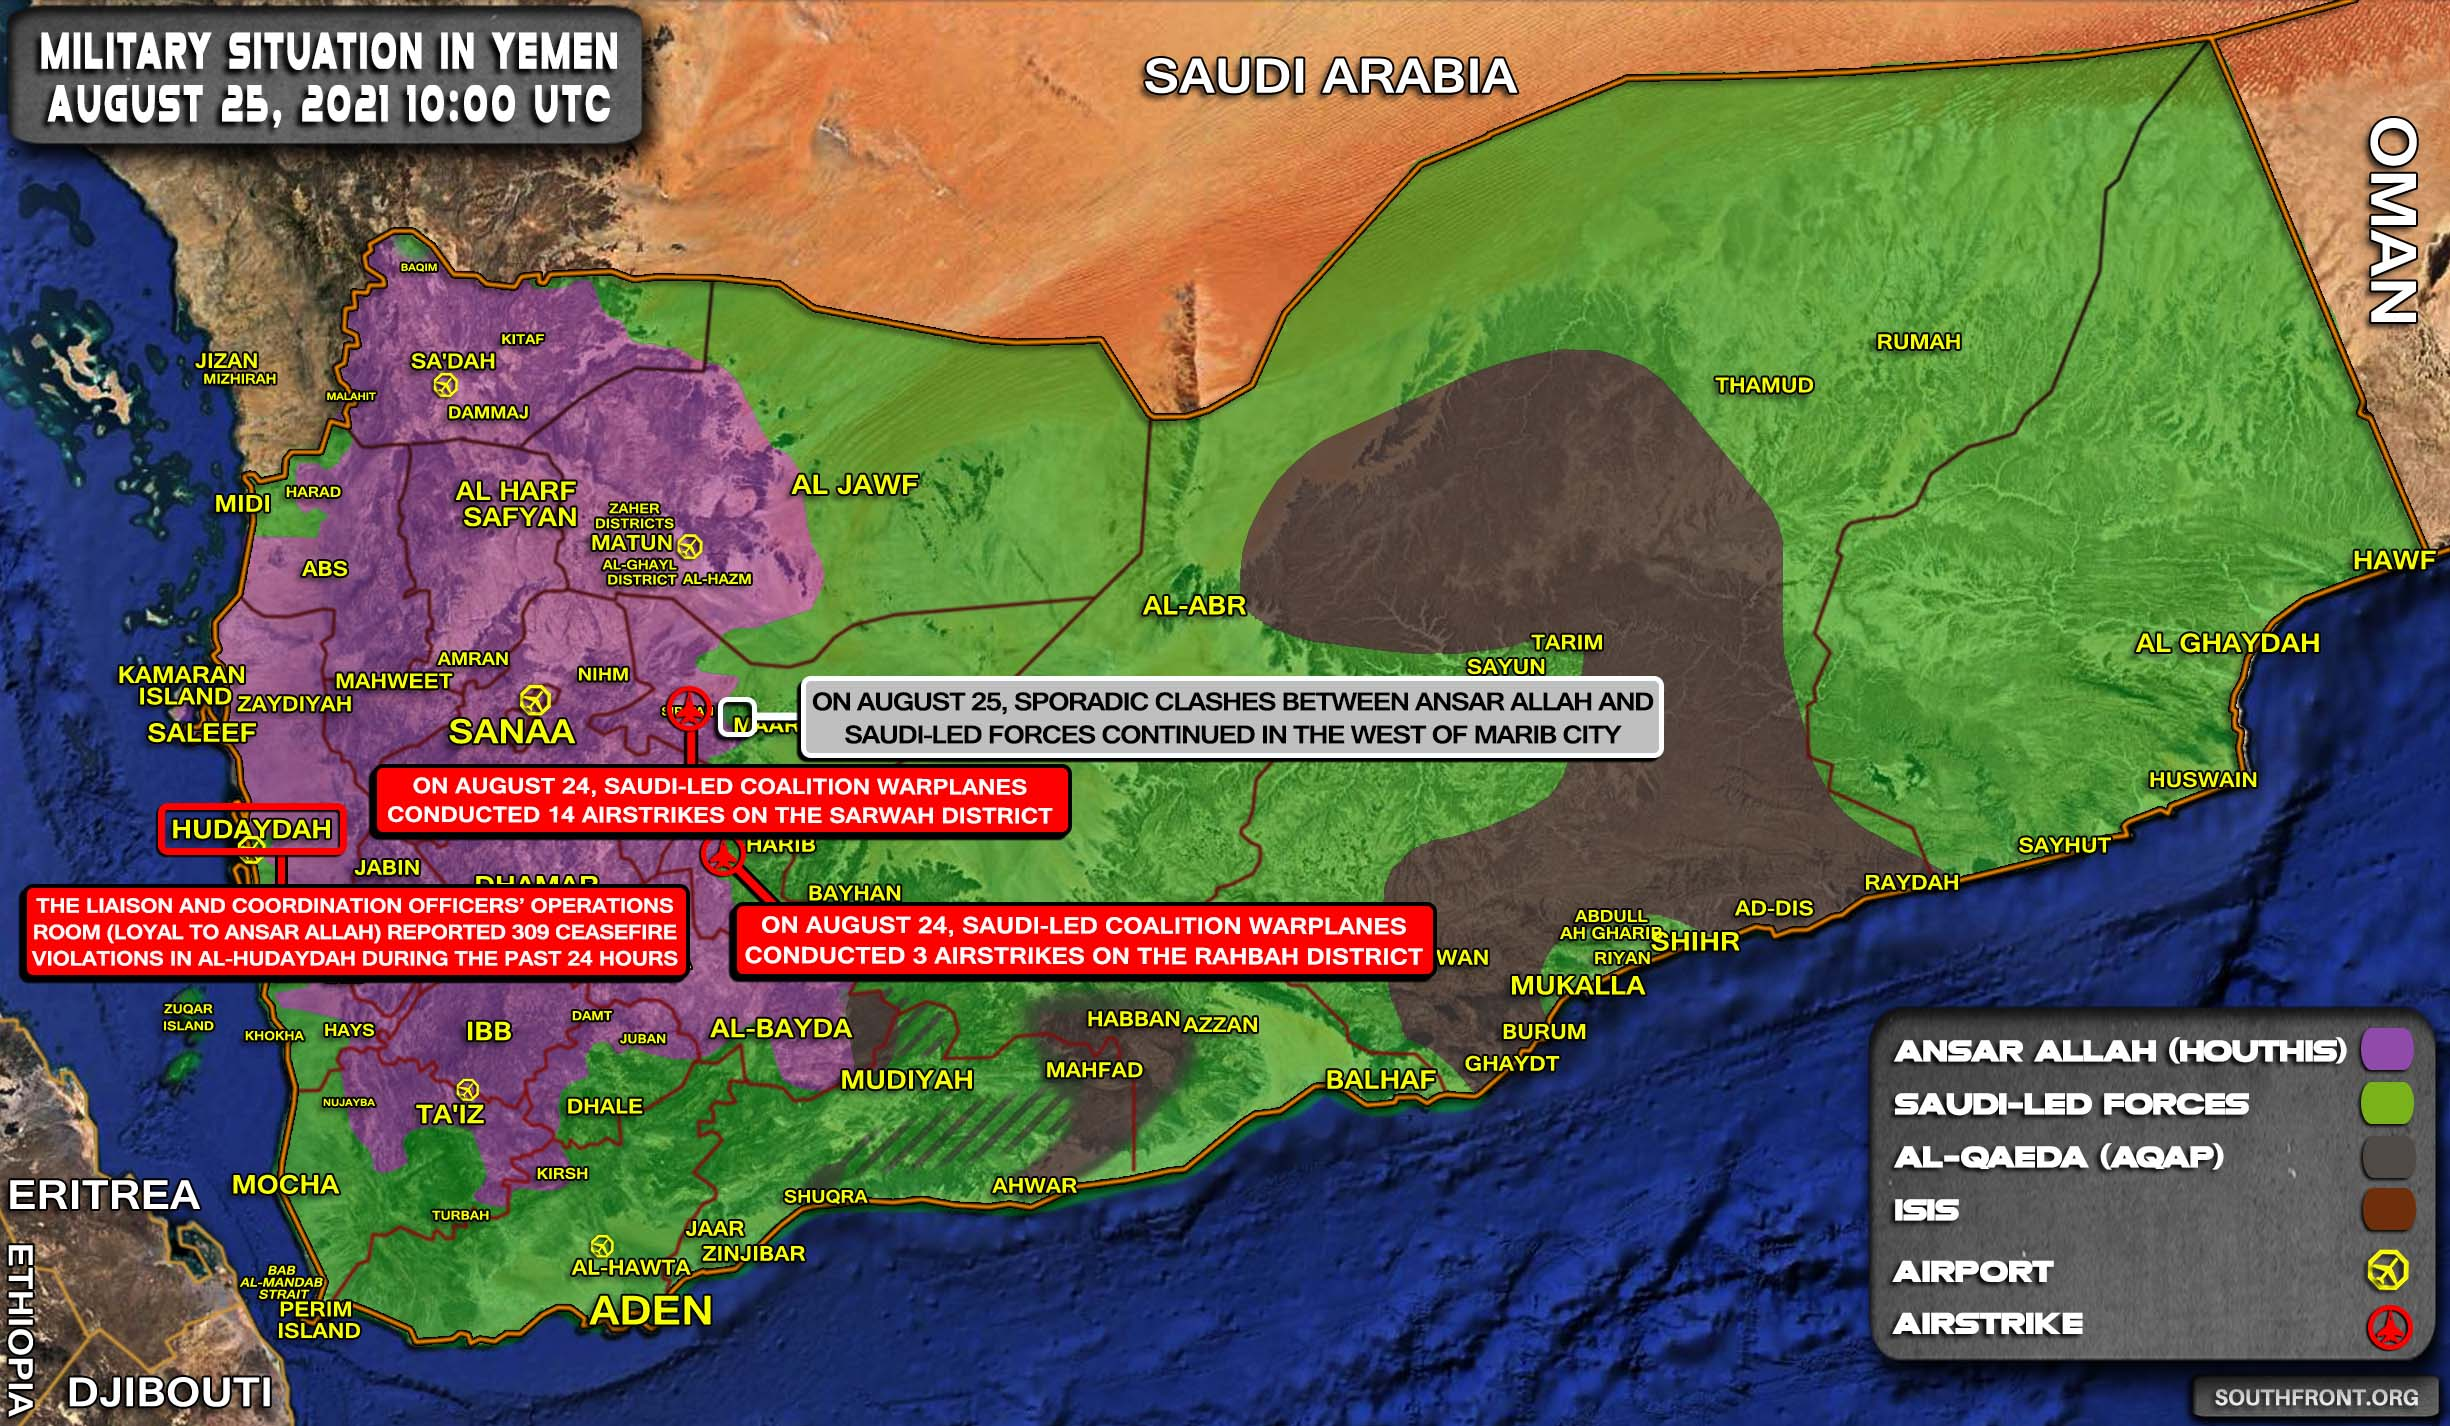 Military Situation In Yemen On August 25, 2021 (Map Update)